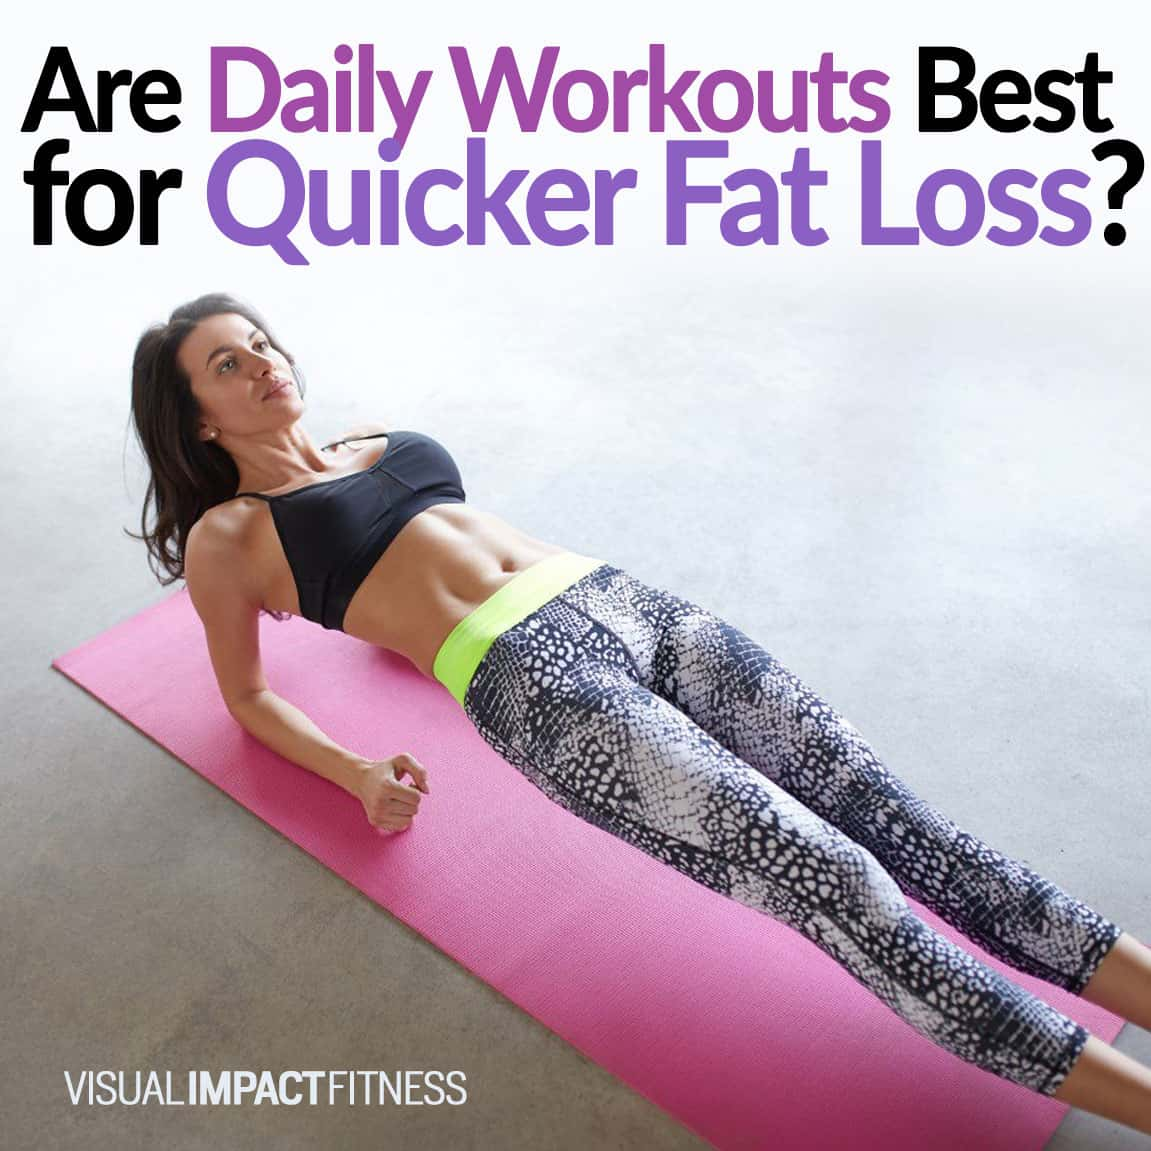 Daily Workouts for Quicker Fat Loss?